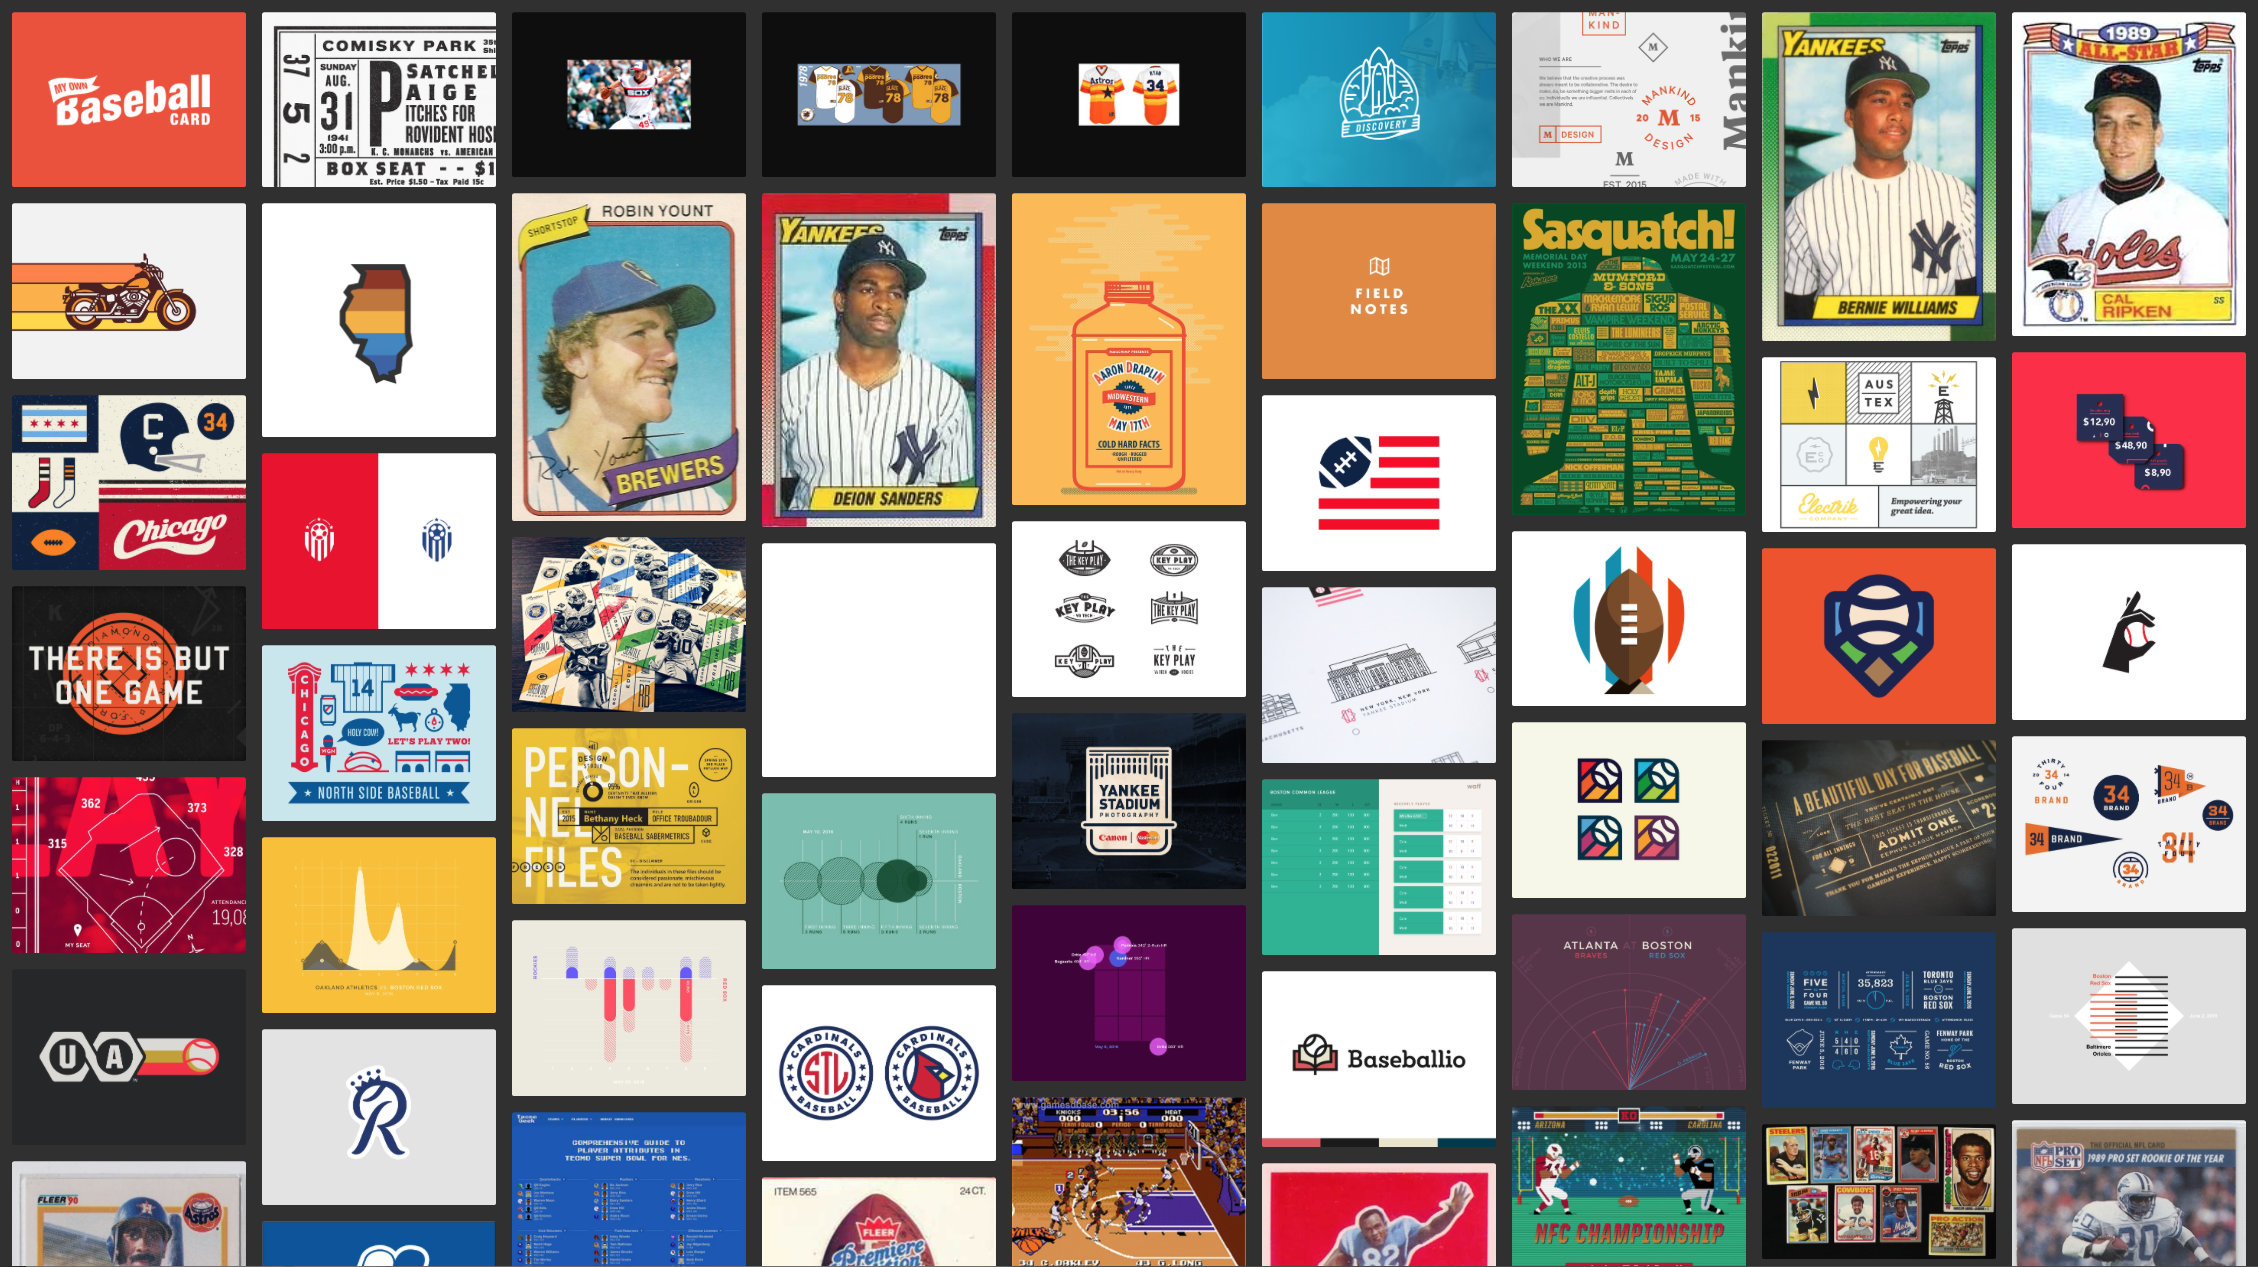 A moodboard with several differnt images mostly reflective of sports